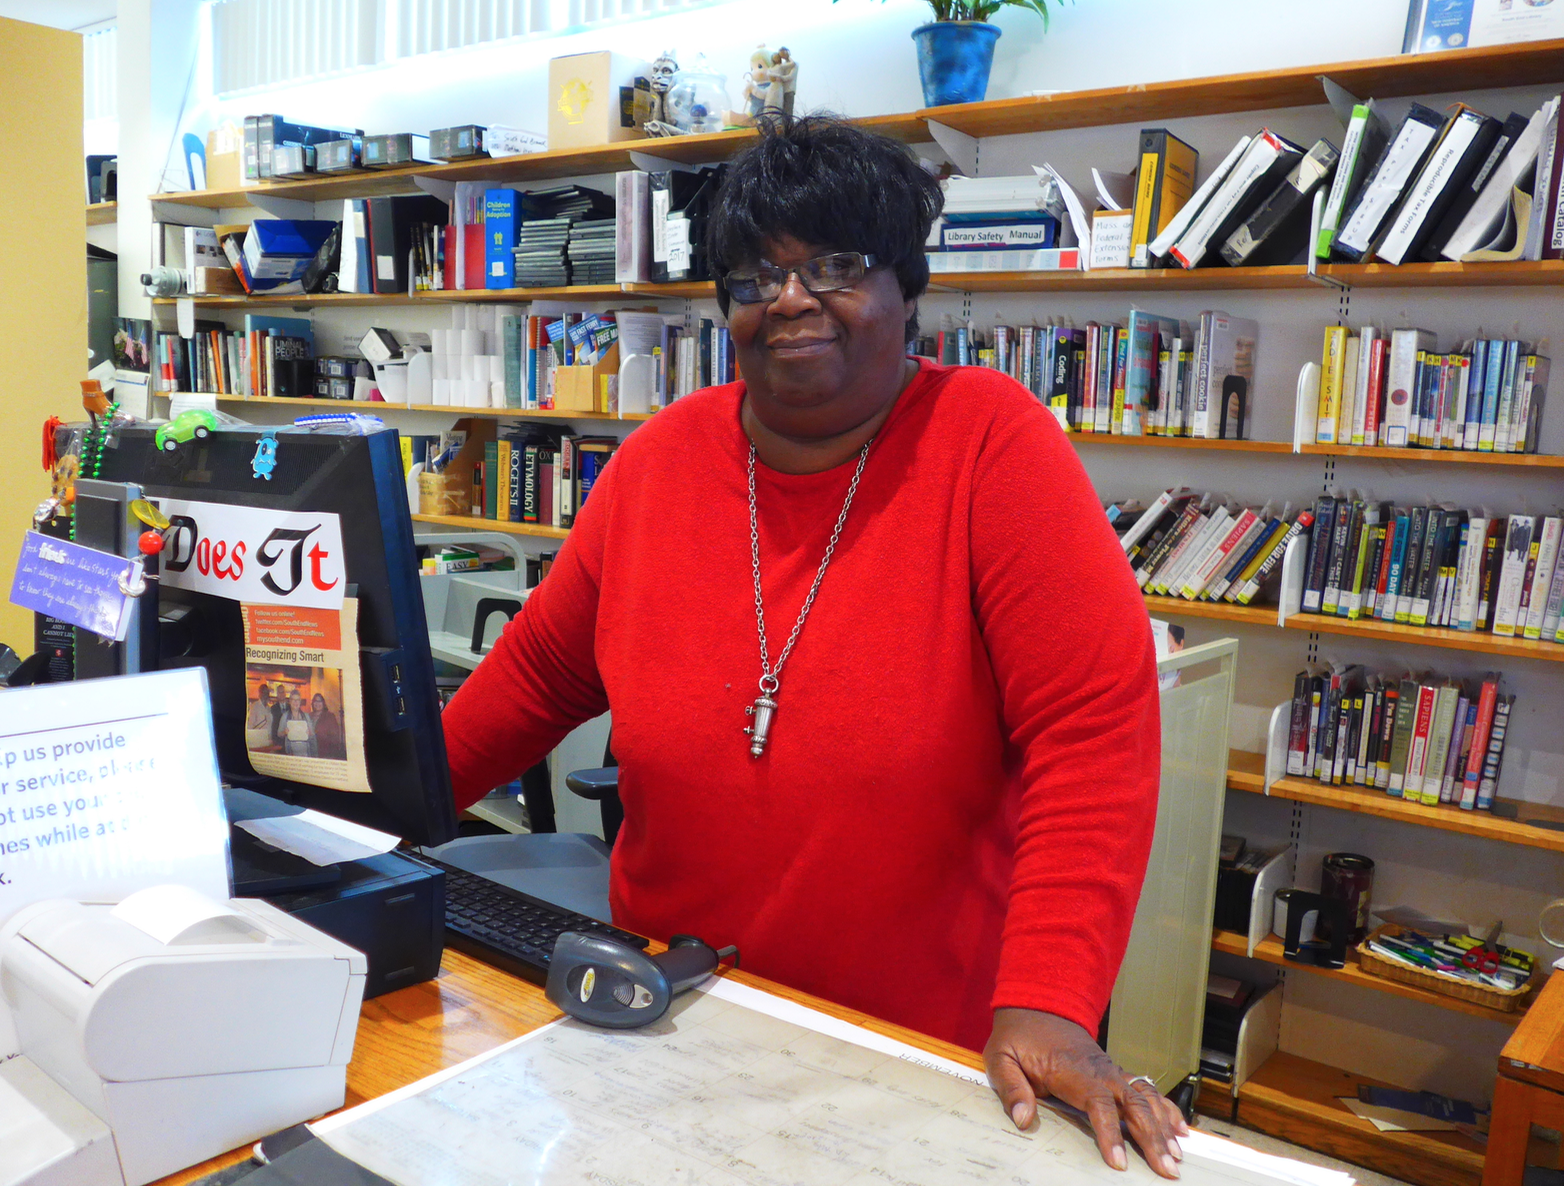 As she is known to hundreds, if not thousands, Deborah Madrey behind the circulation desk of the South End branch of the Boston Public Library